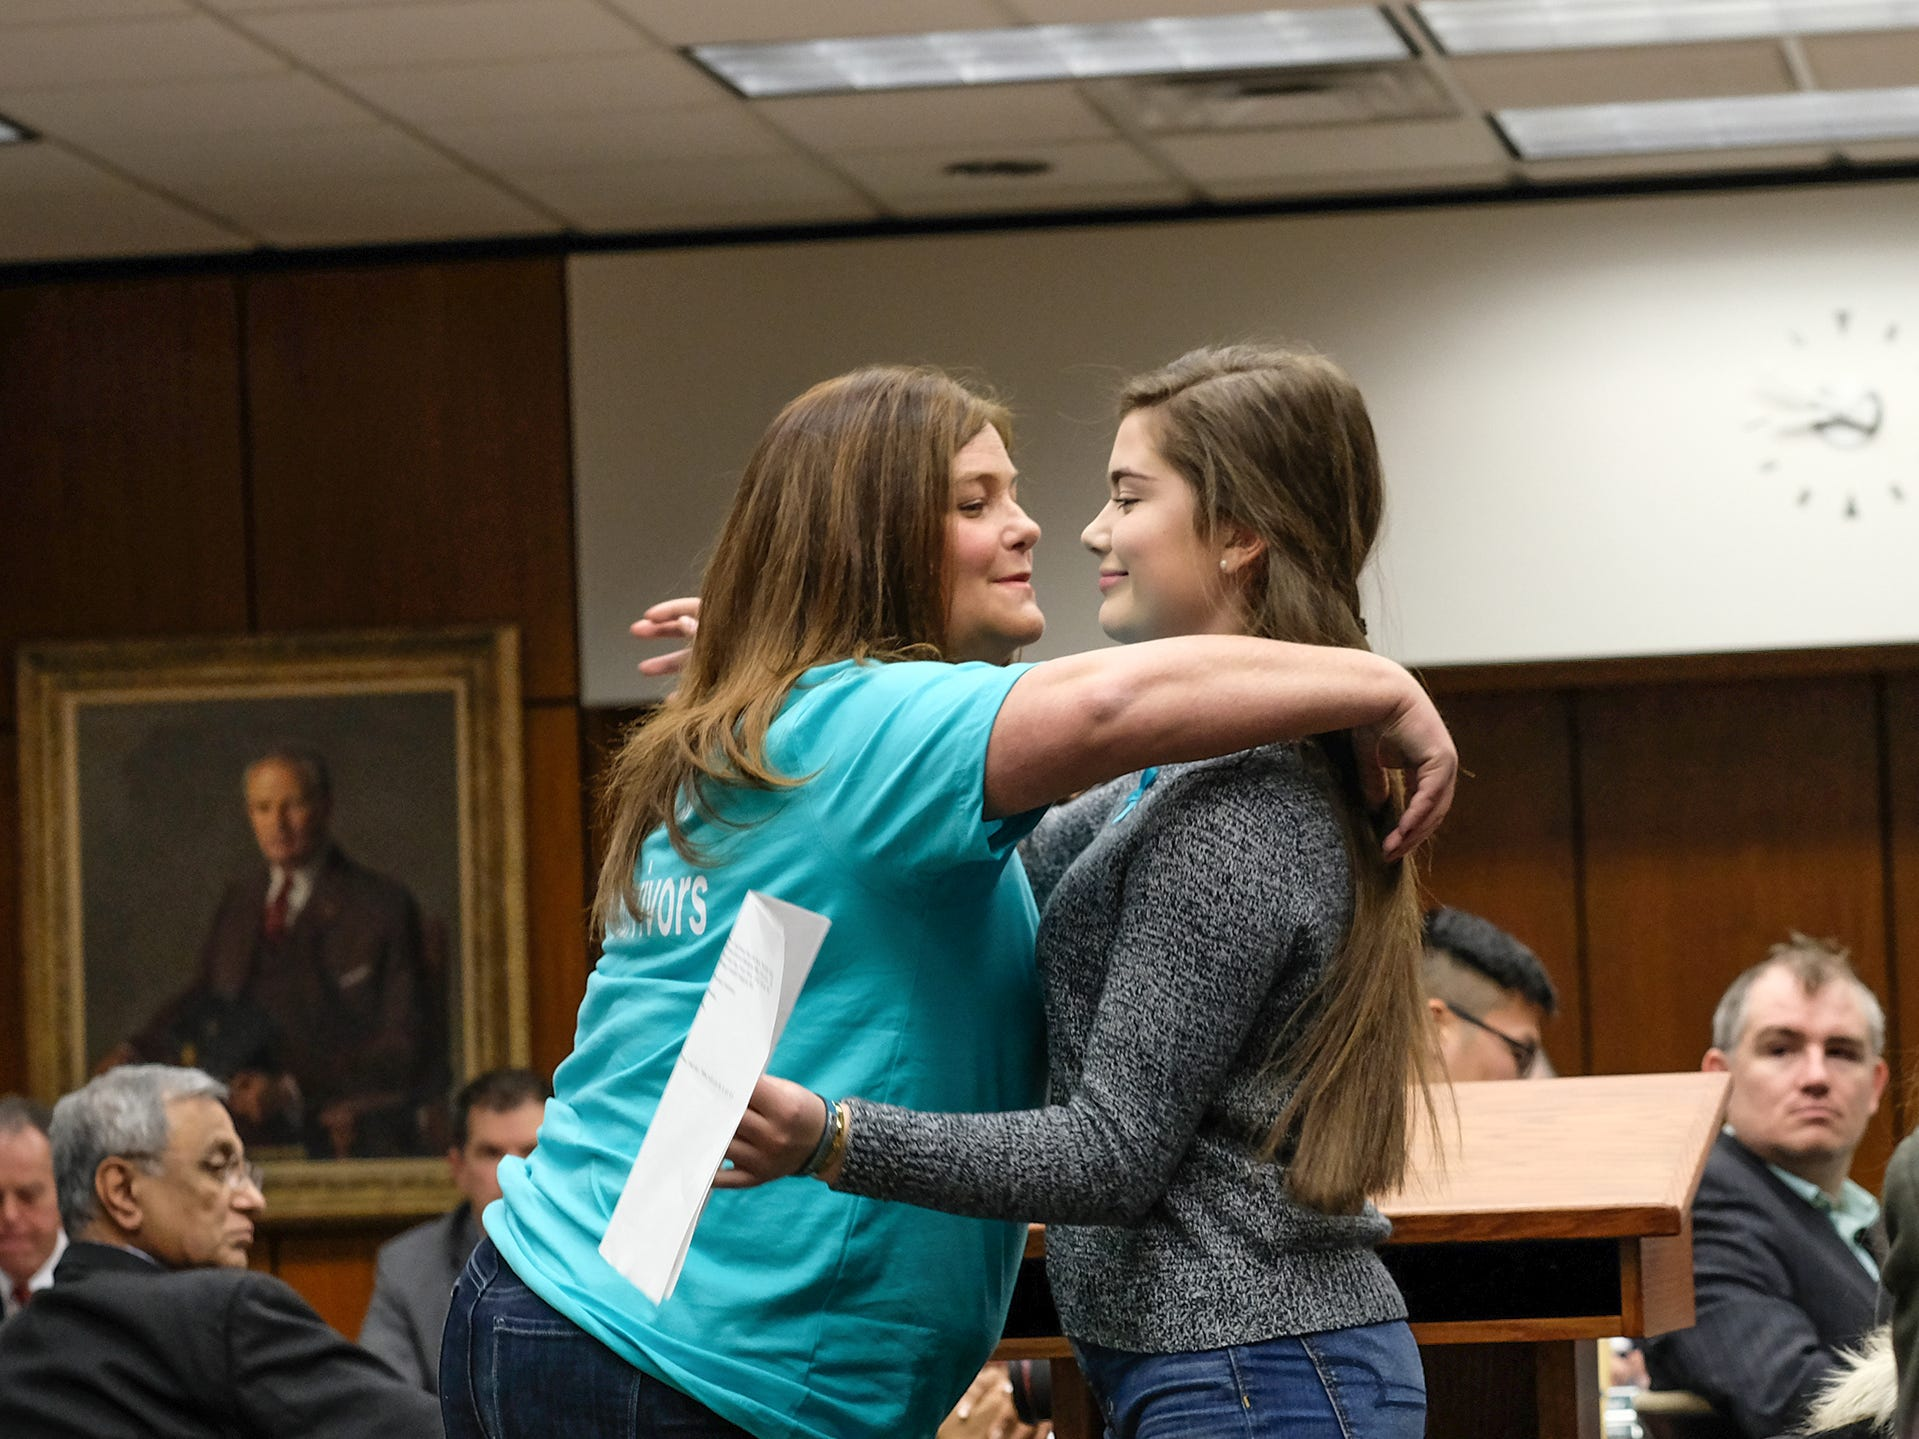 After speaking, Leslie Miller, left, and her daughter Emma Ann Miller embrace at the MSU Board of Trustees meeting Friday, Dec. 14, 2018.The mother and daughter were critical of the Board for cancelling the Healing Assistance Fund set up for victims of Larry Nassar.